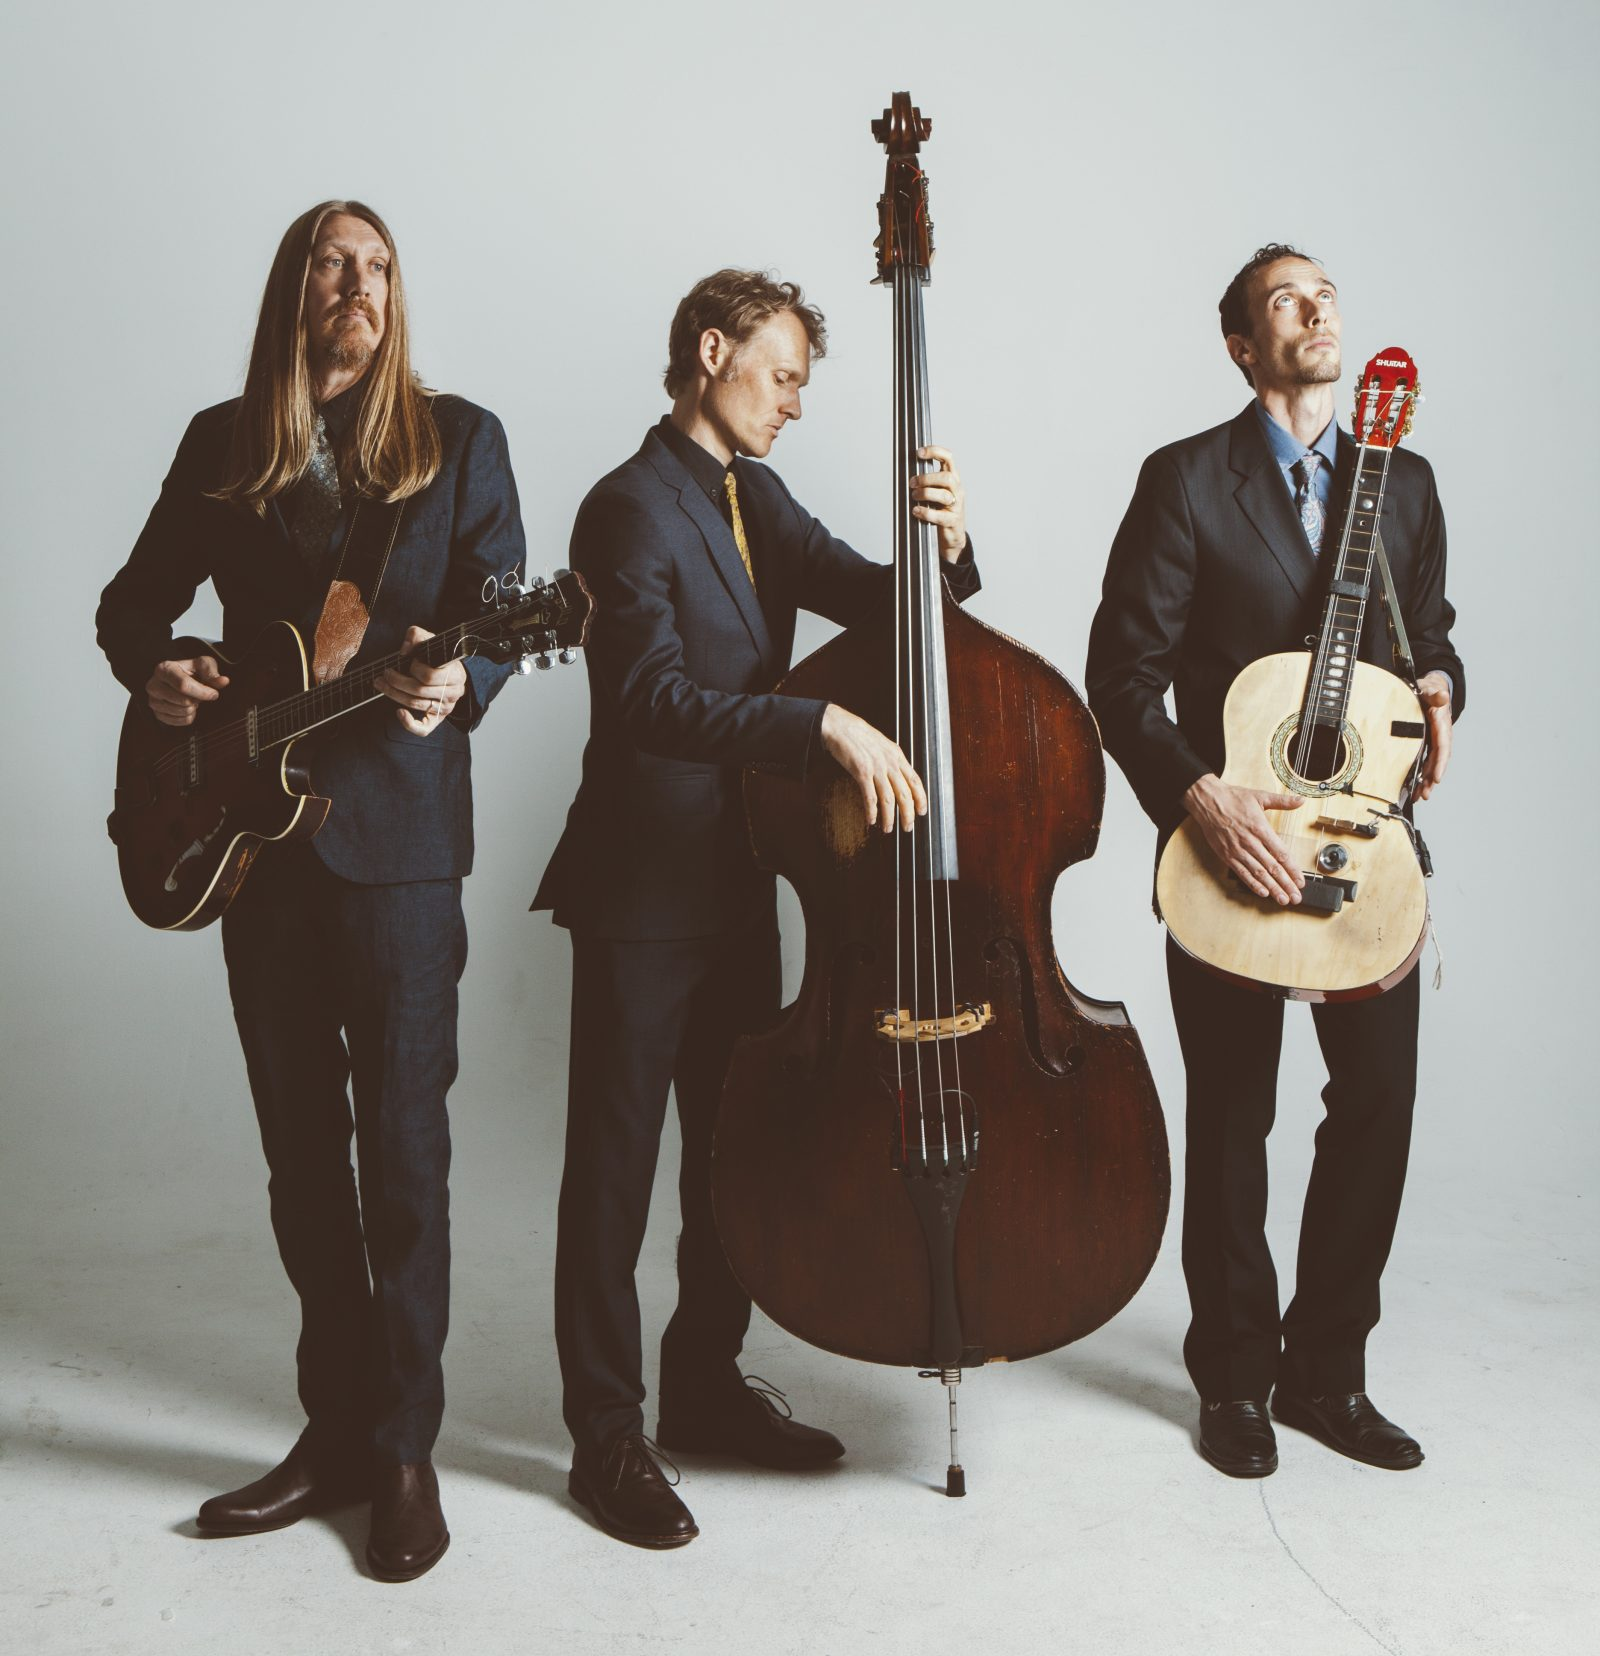 The Wood Brothers will play Buffalo's Town Ballroom on Nov. 11.